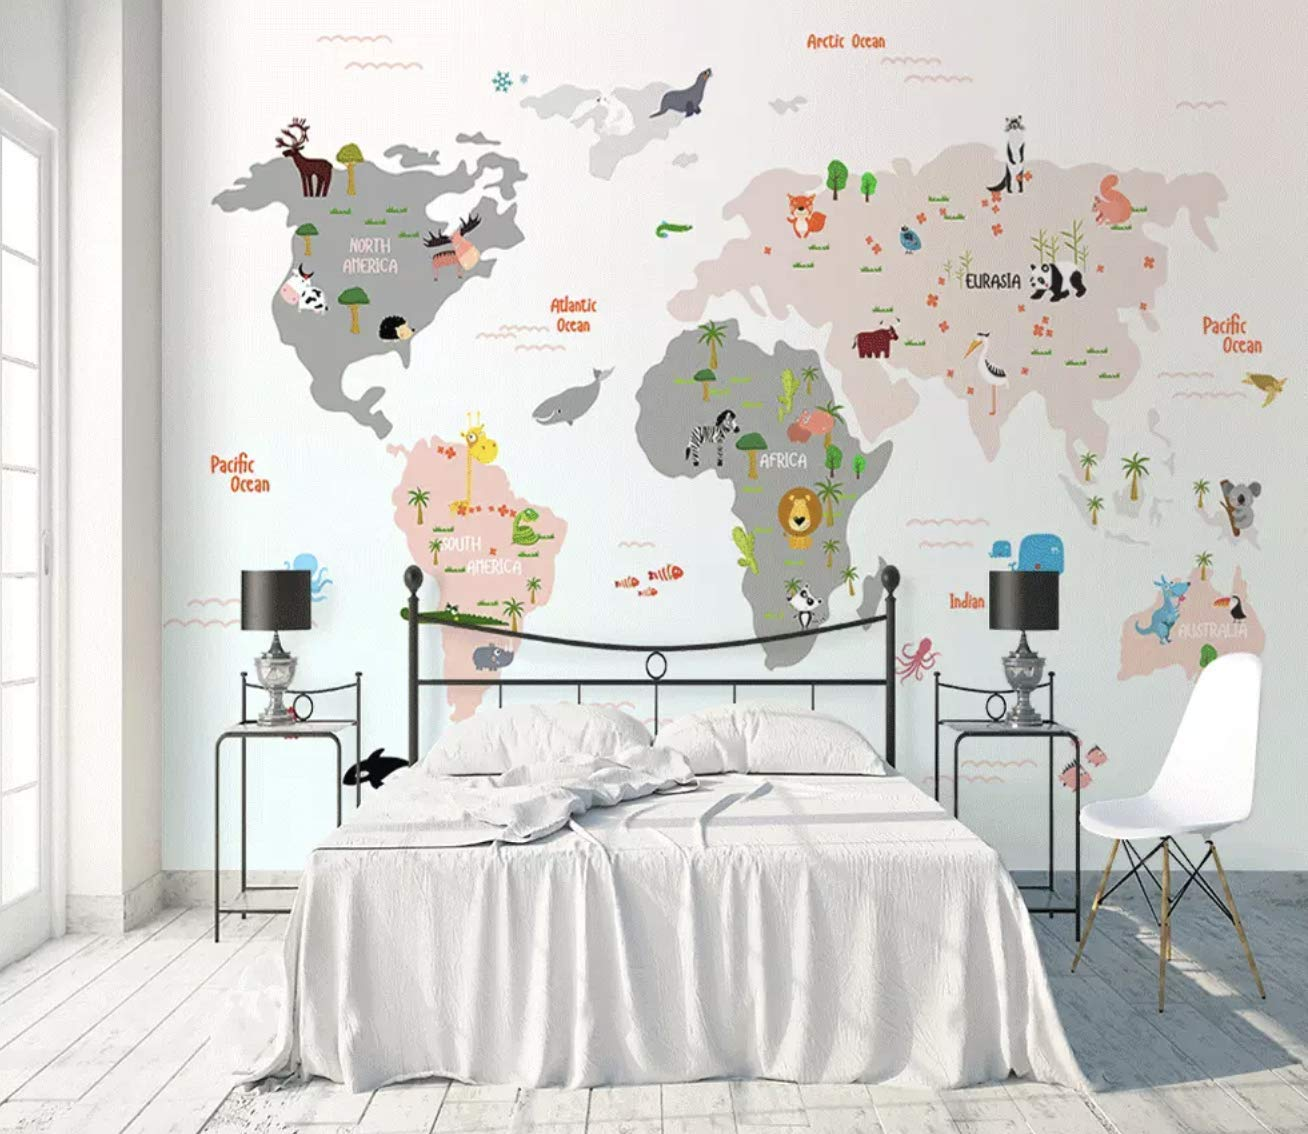 Top 10 Best World Map for Kids Reviews in 2020 10